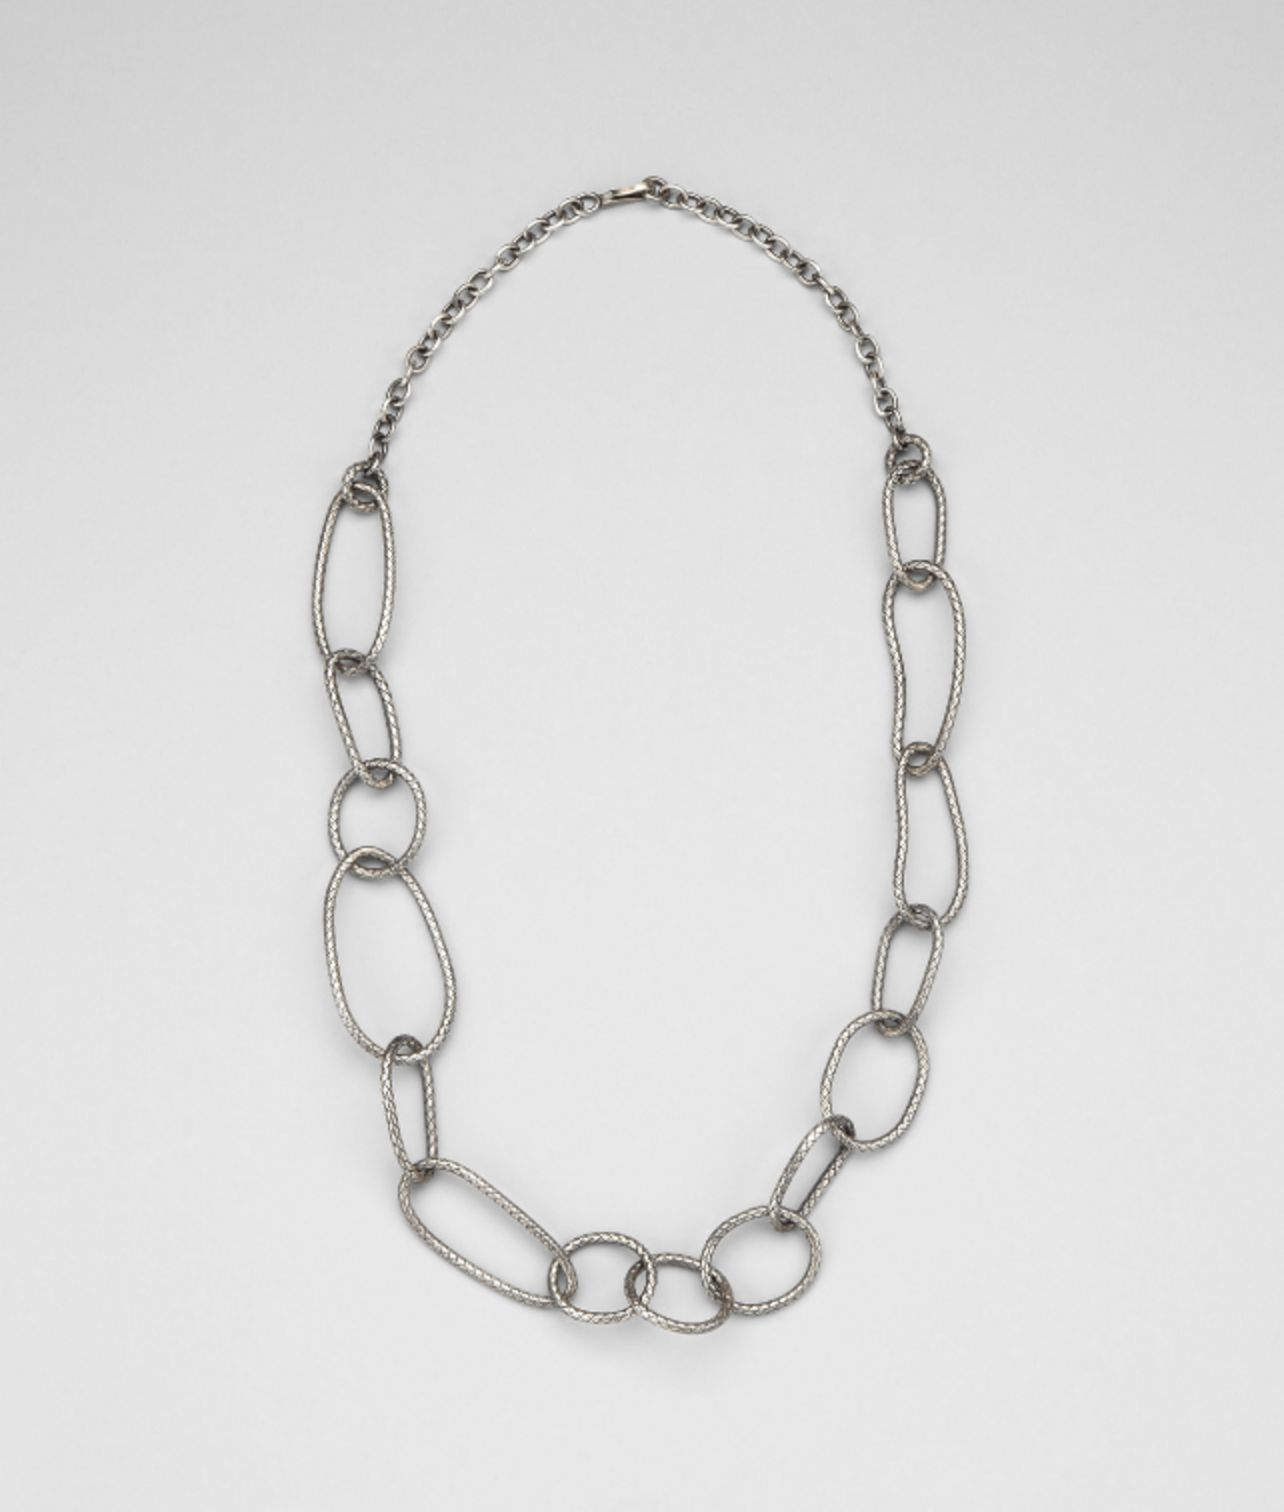 BOTTEGA VENETA - Intrecciato Necklace